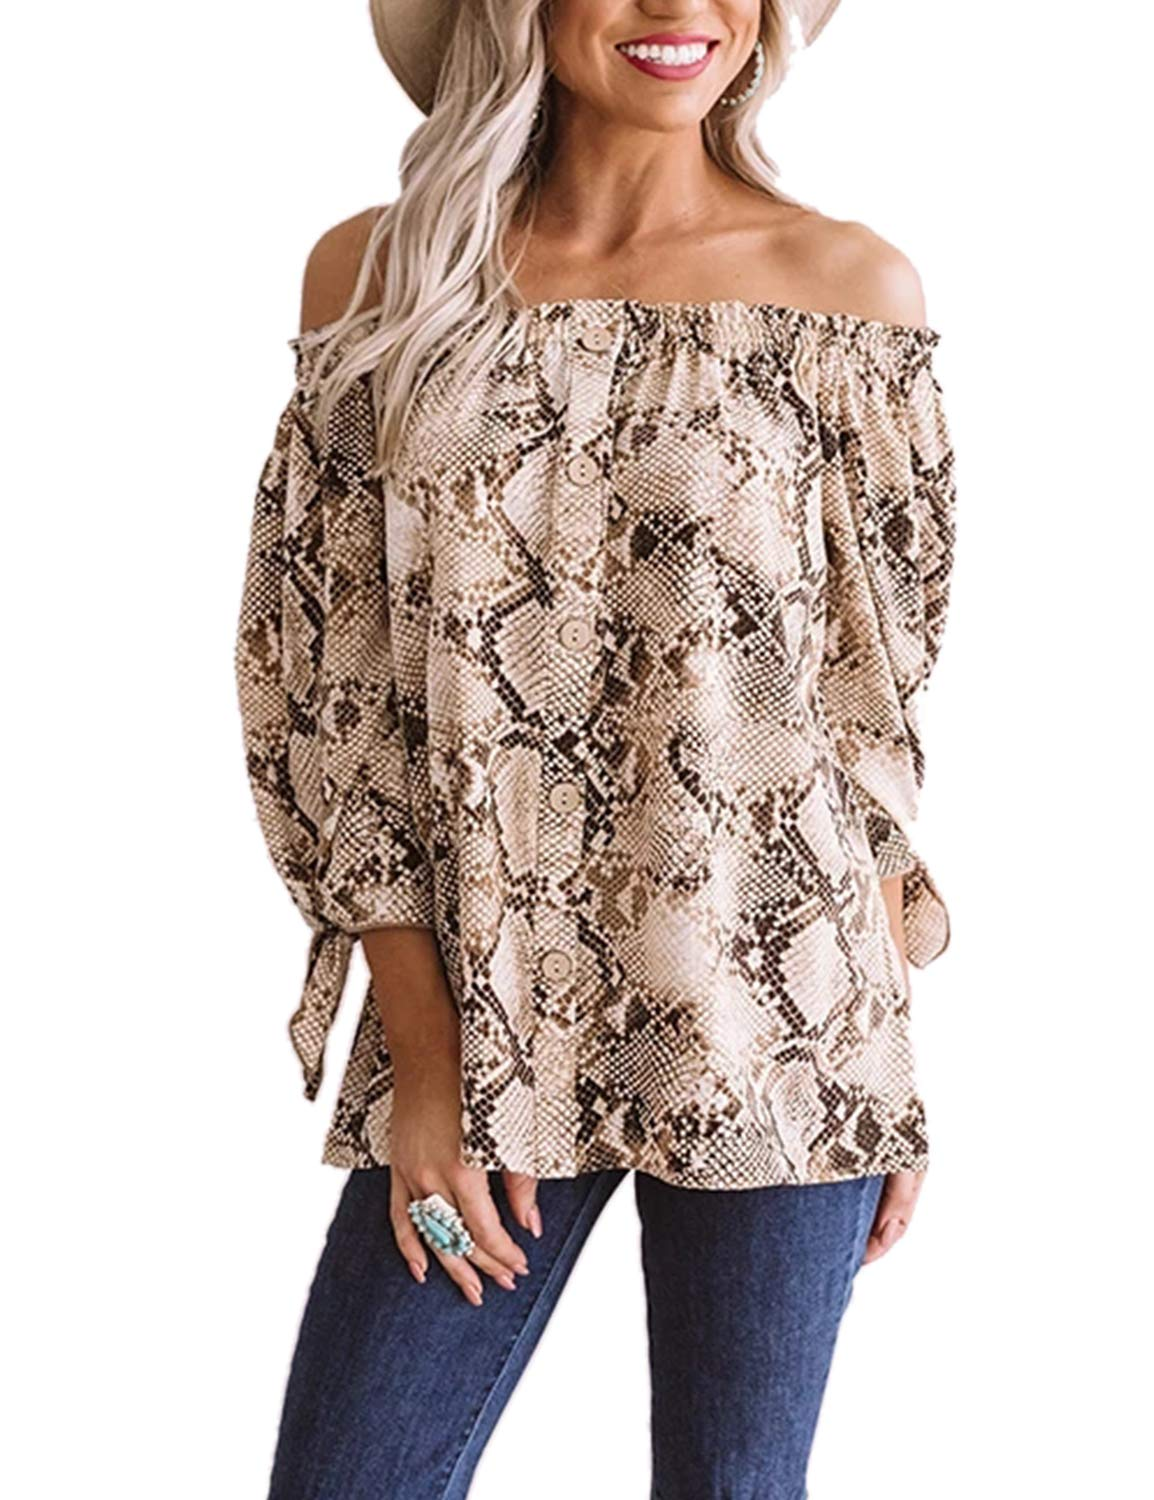 MAY Women's Off The Shoulder Top Tie Knot Snakeskin Chiffon Loose Blouse Shirt